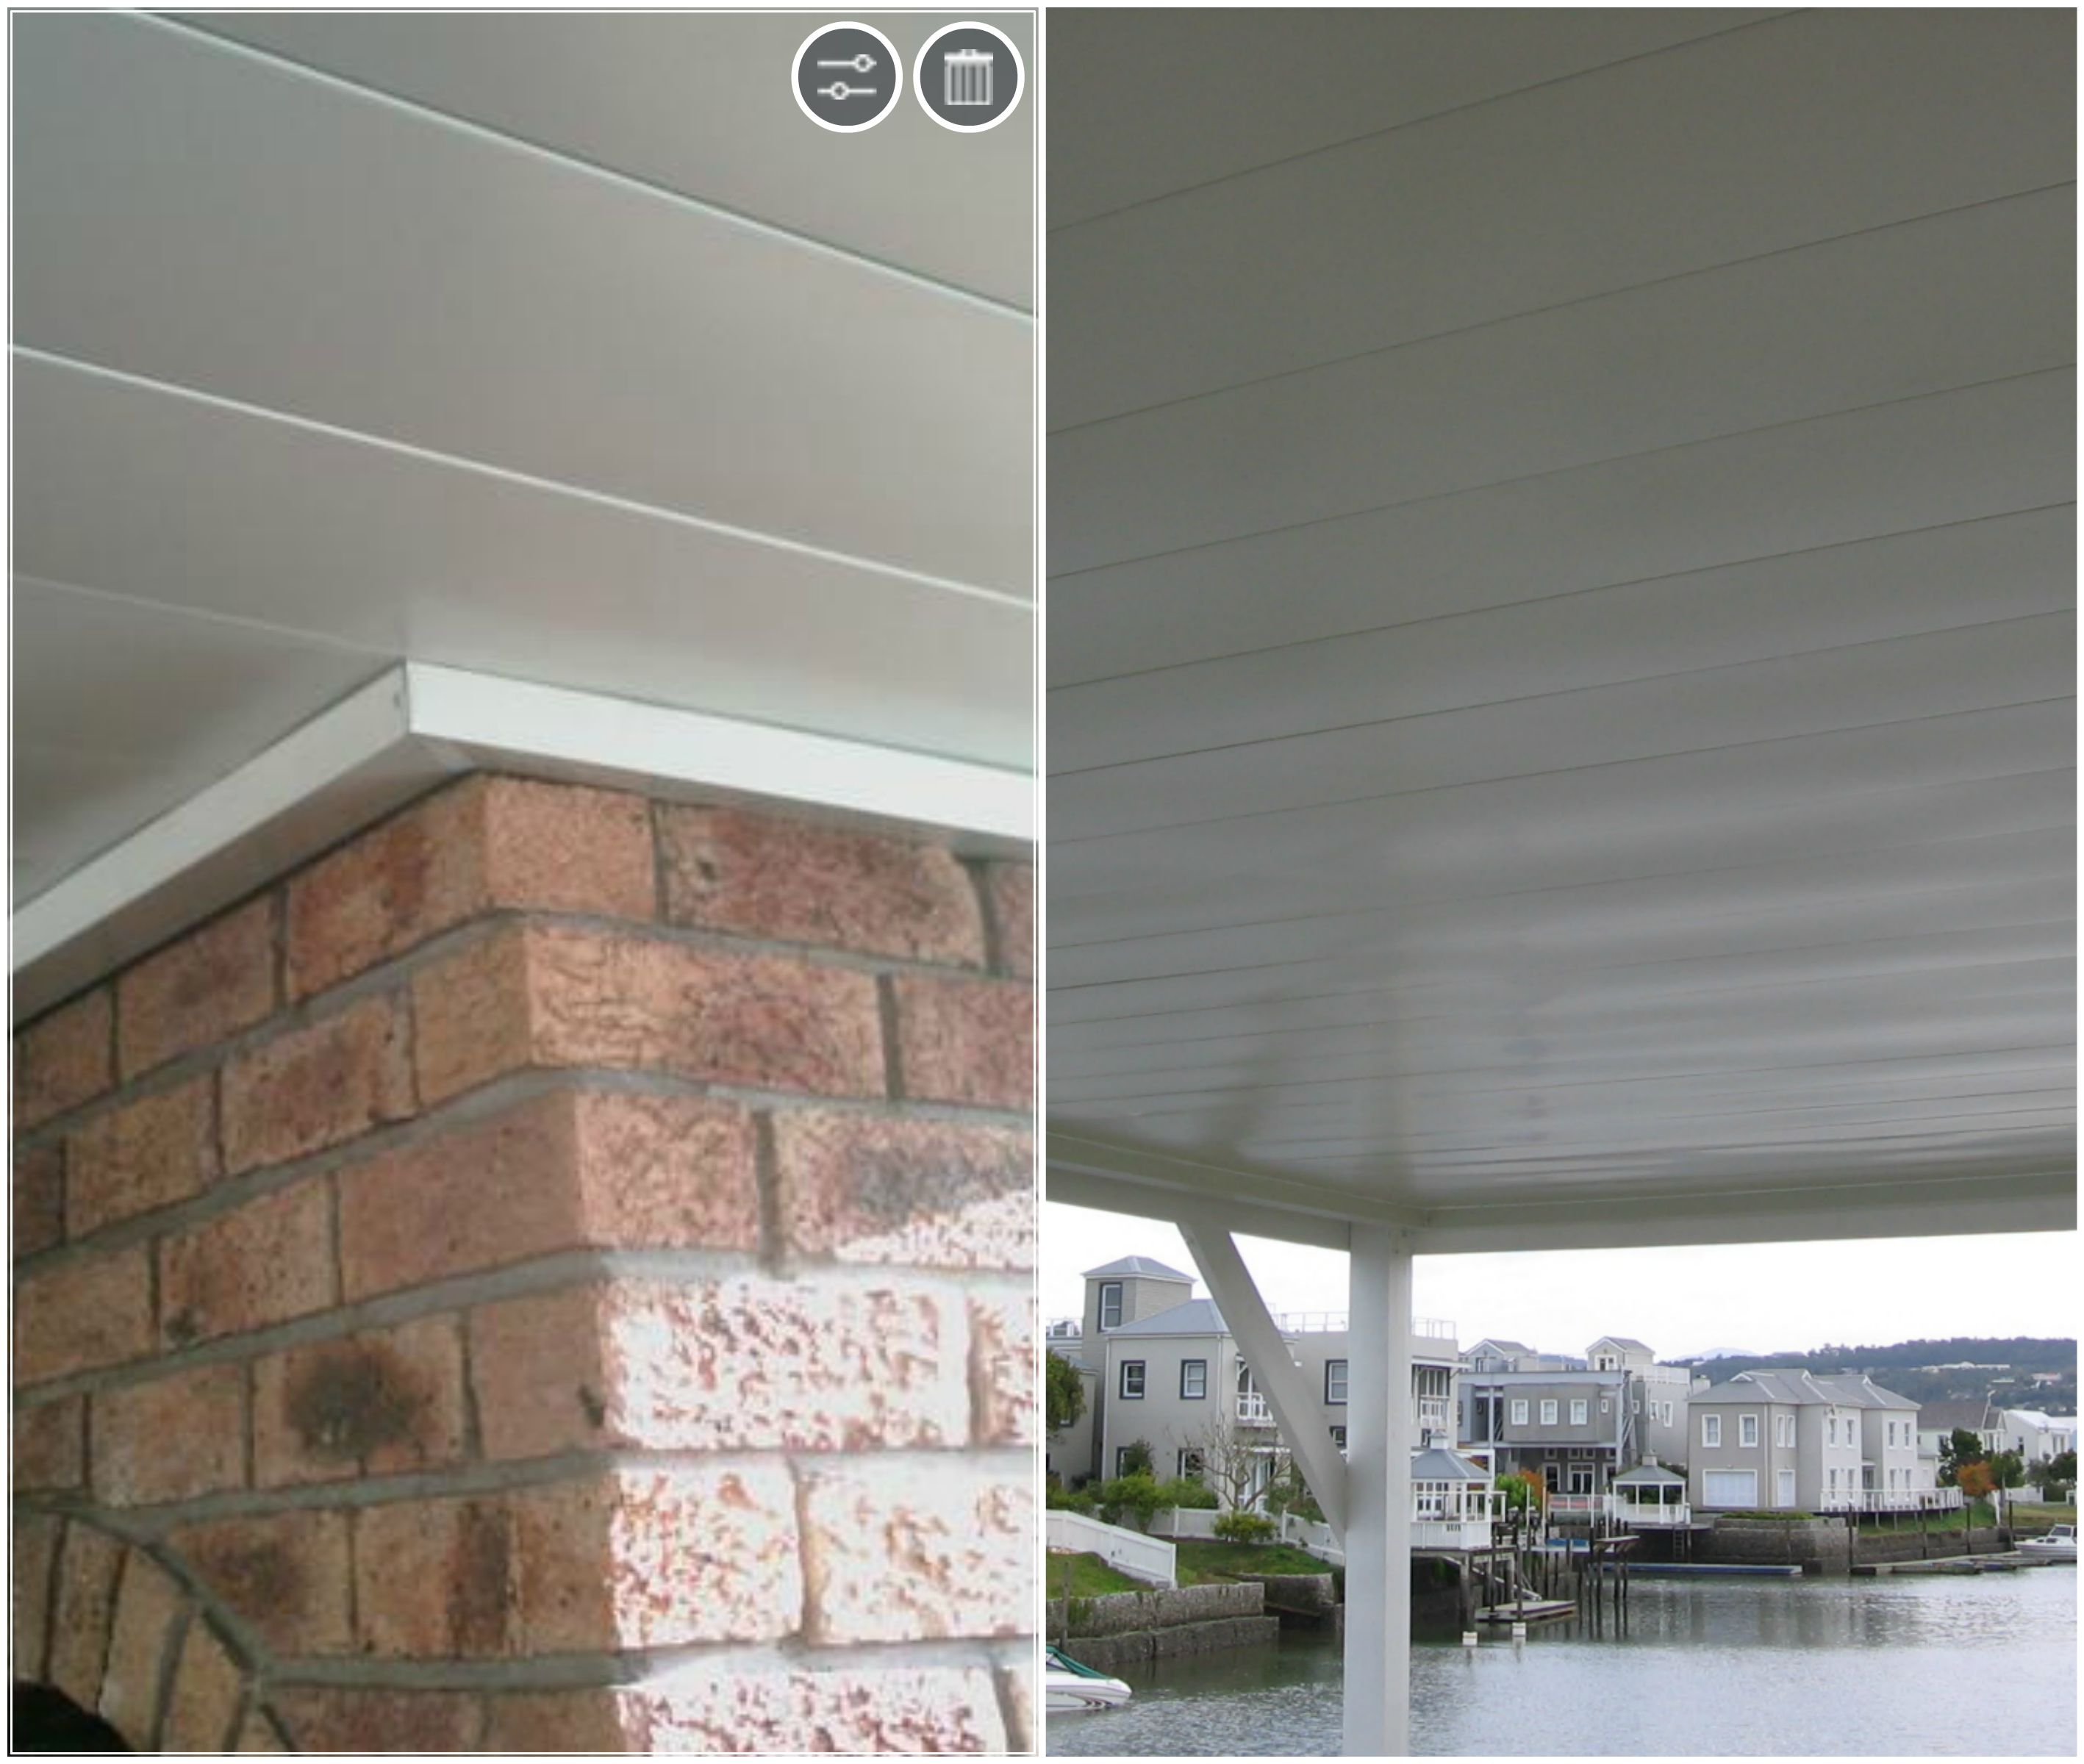 Our State Of The Art Under Deck Ceiling And Drainage System Will Easily  Turn That Unused, Wasted Area Under Your Deck Into A Pleasant, Waterproof  And Usable ...